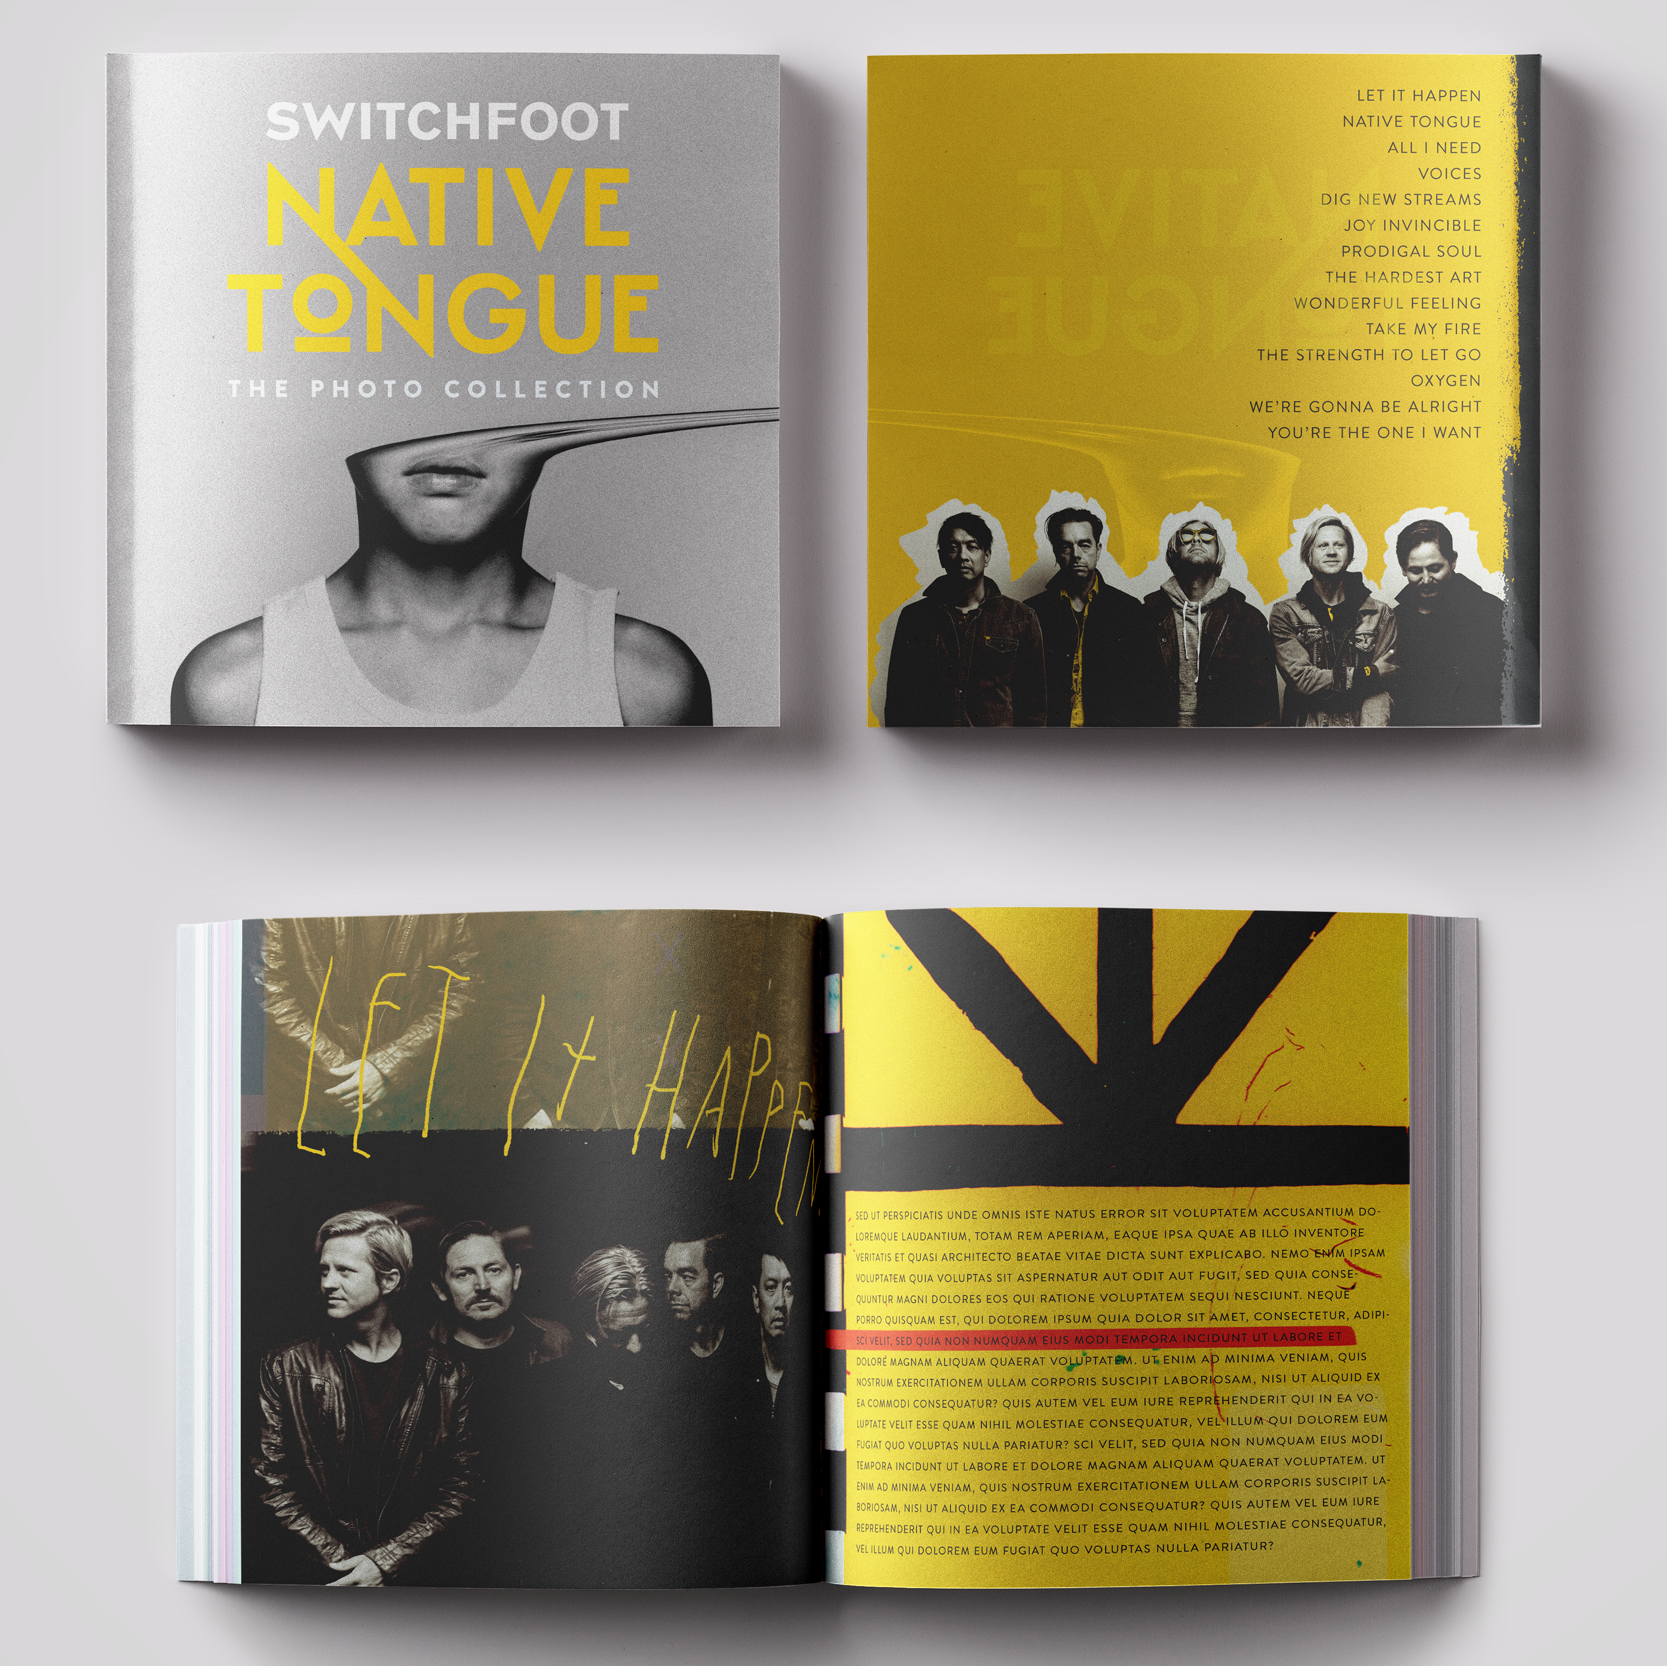 switchfoot_native-tongue_BOOK.png